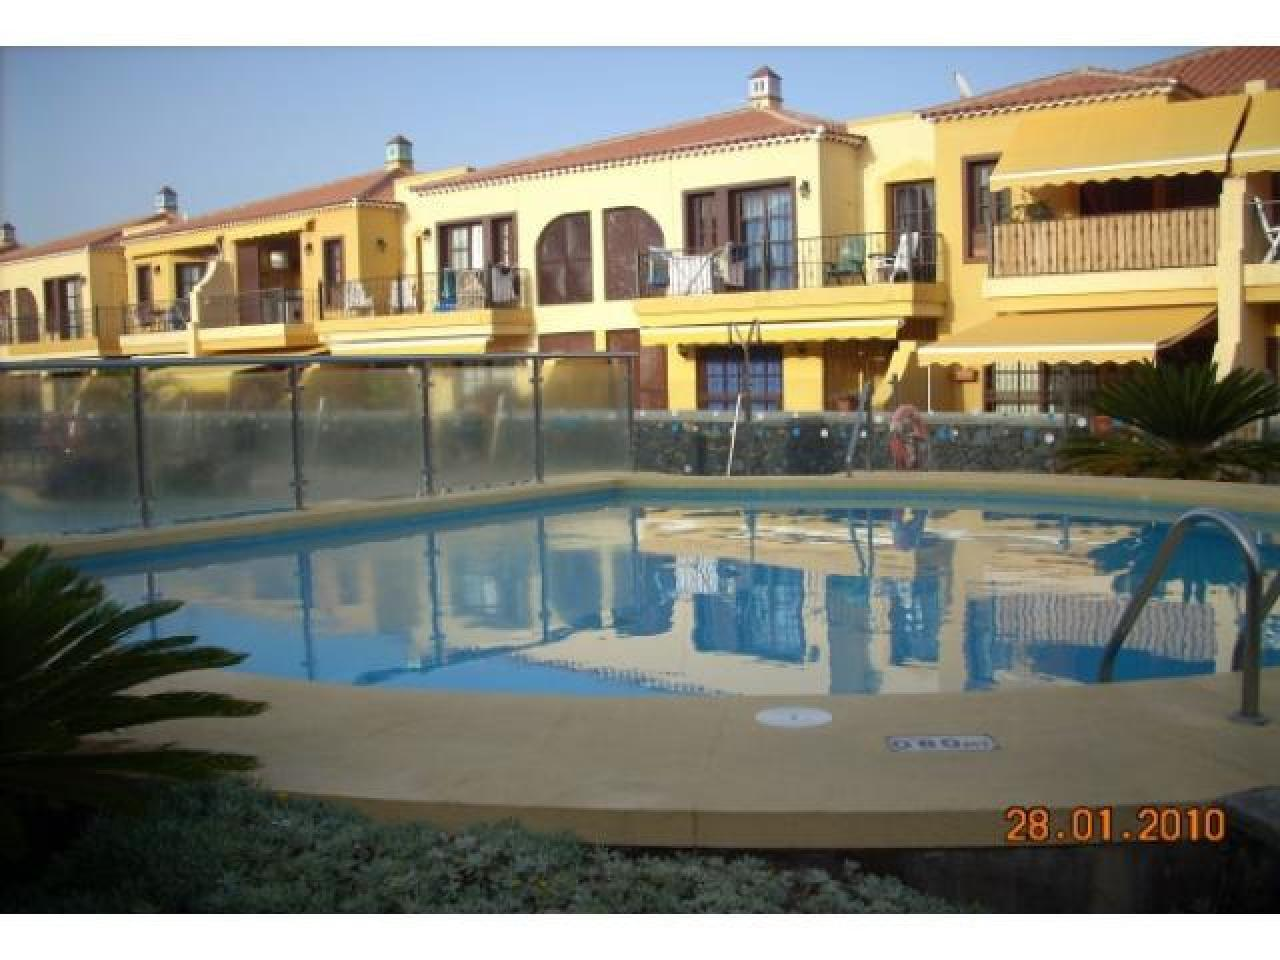 Real estate in Tenerife for sale » #138 - 4